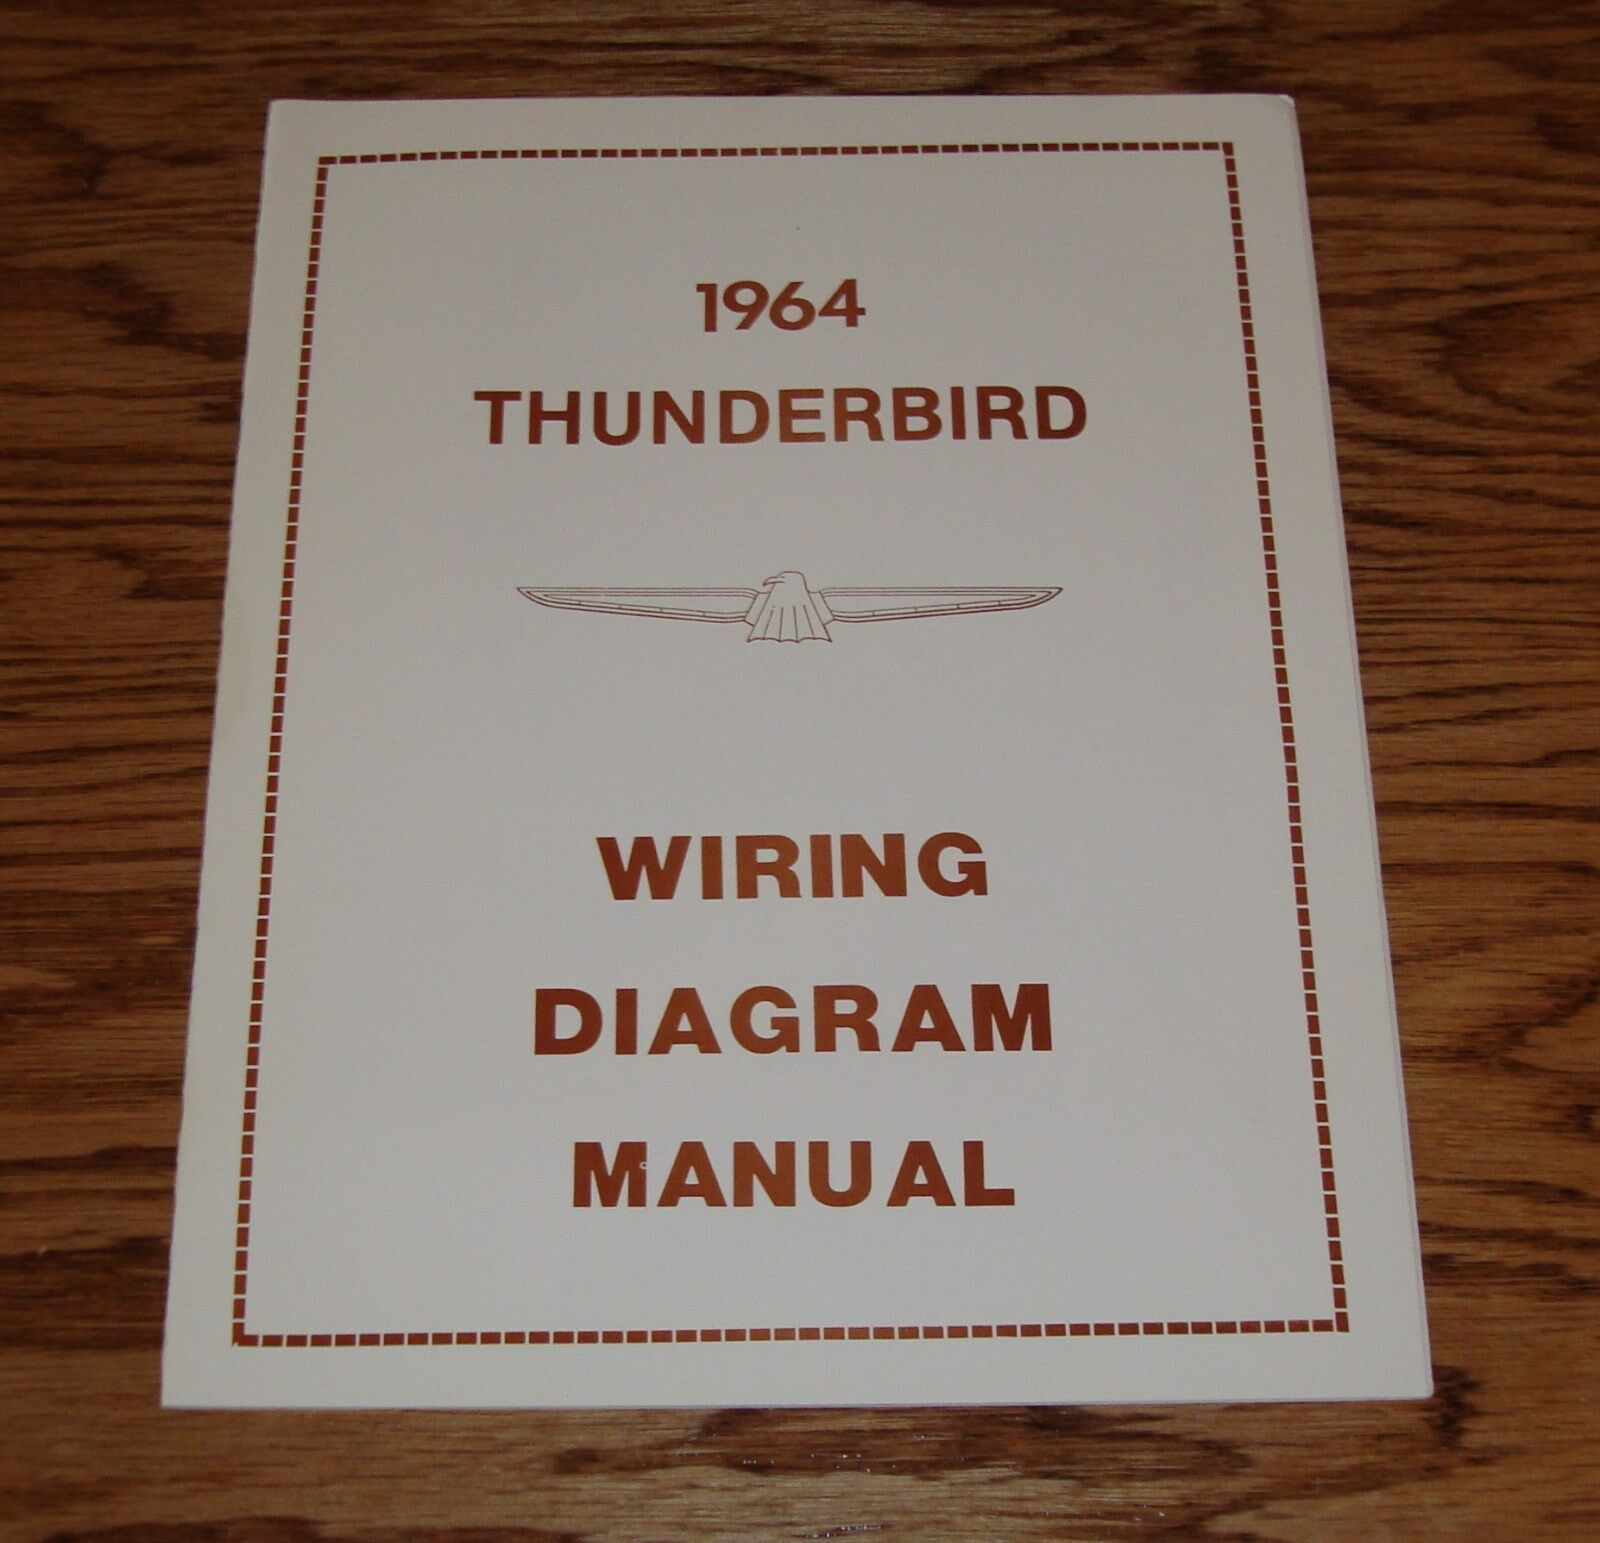 ... 1964 Ford Thunderbird Wiring Diagram Manual 64 1 of 1 See More